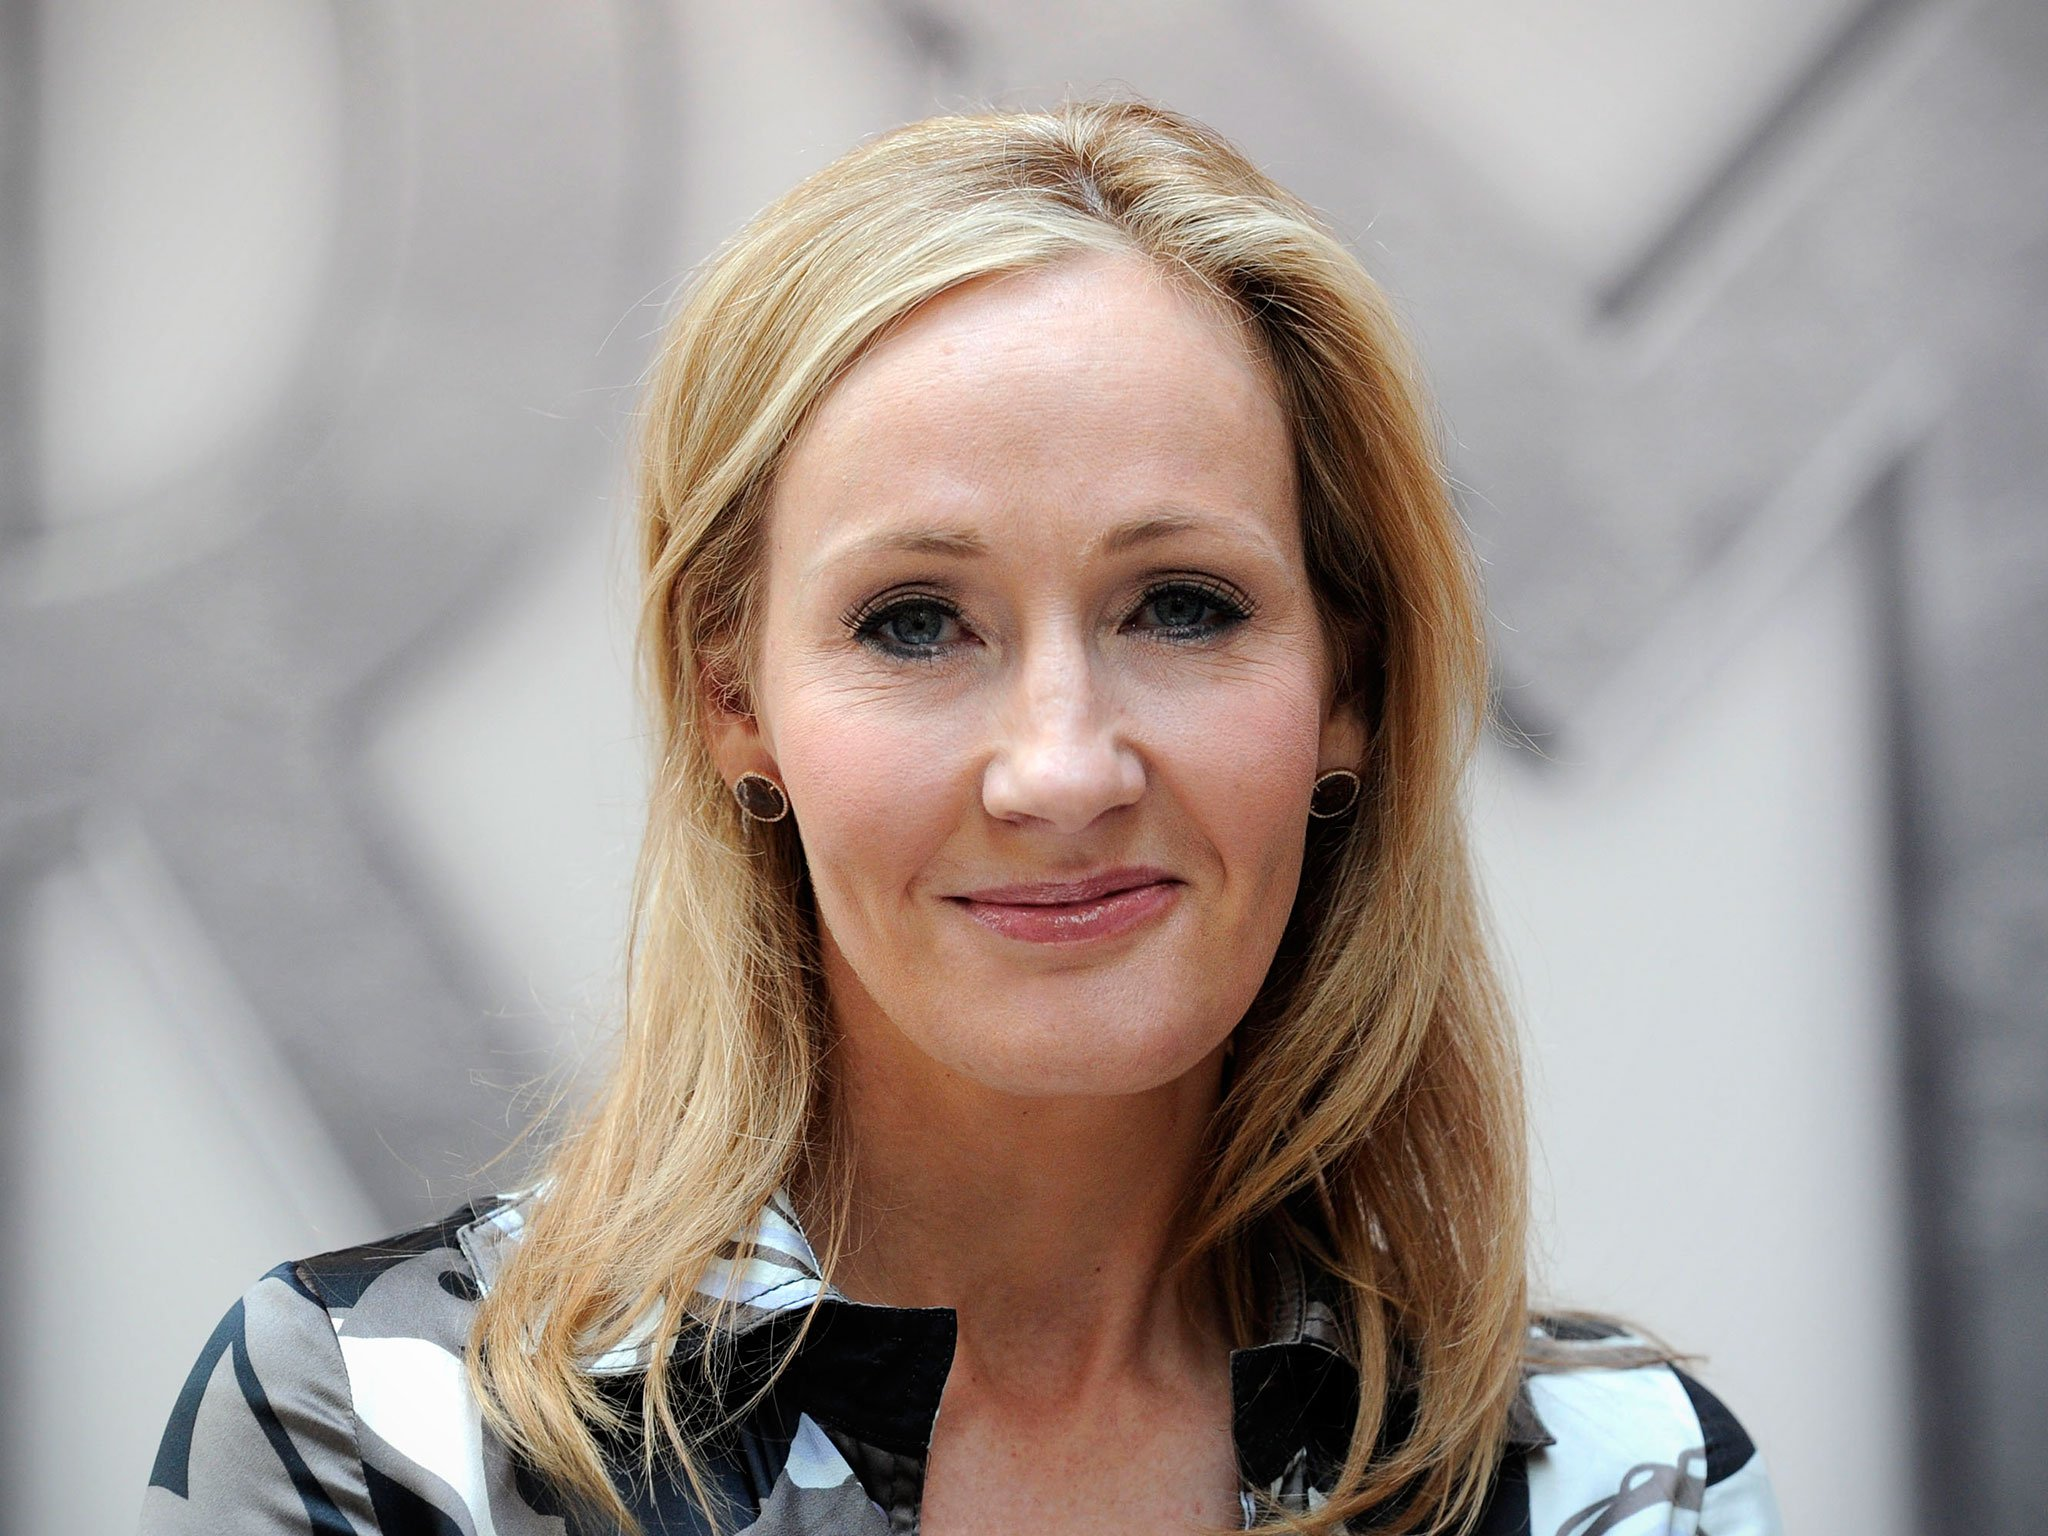 La escritora J.K.Rowling. Fuente: The Independent.